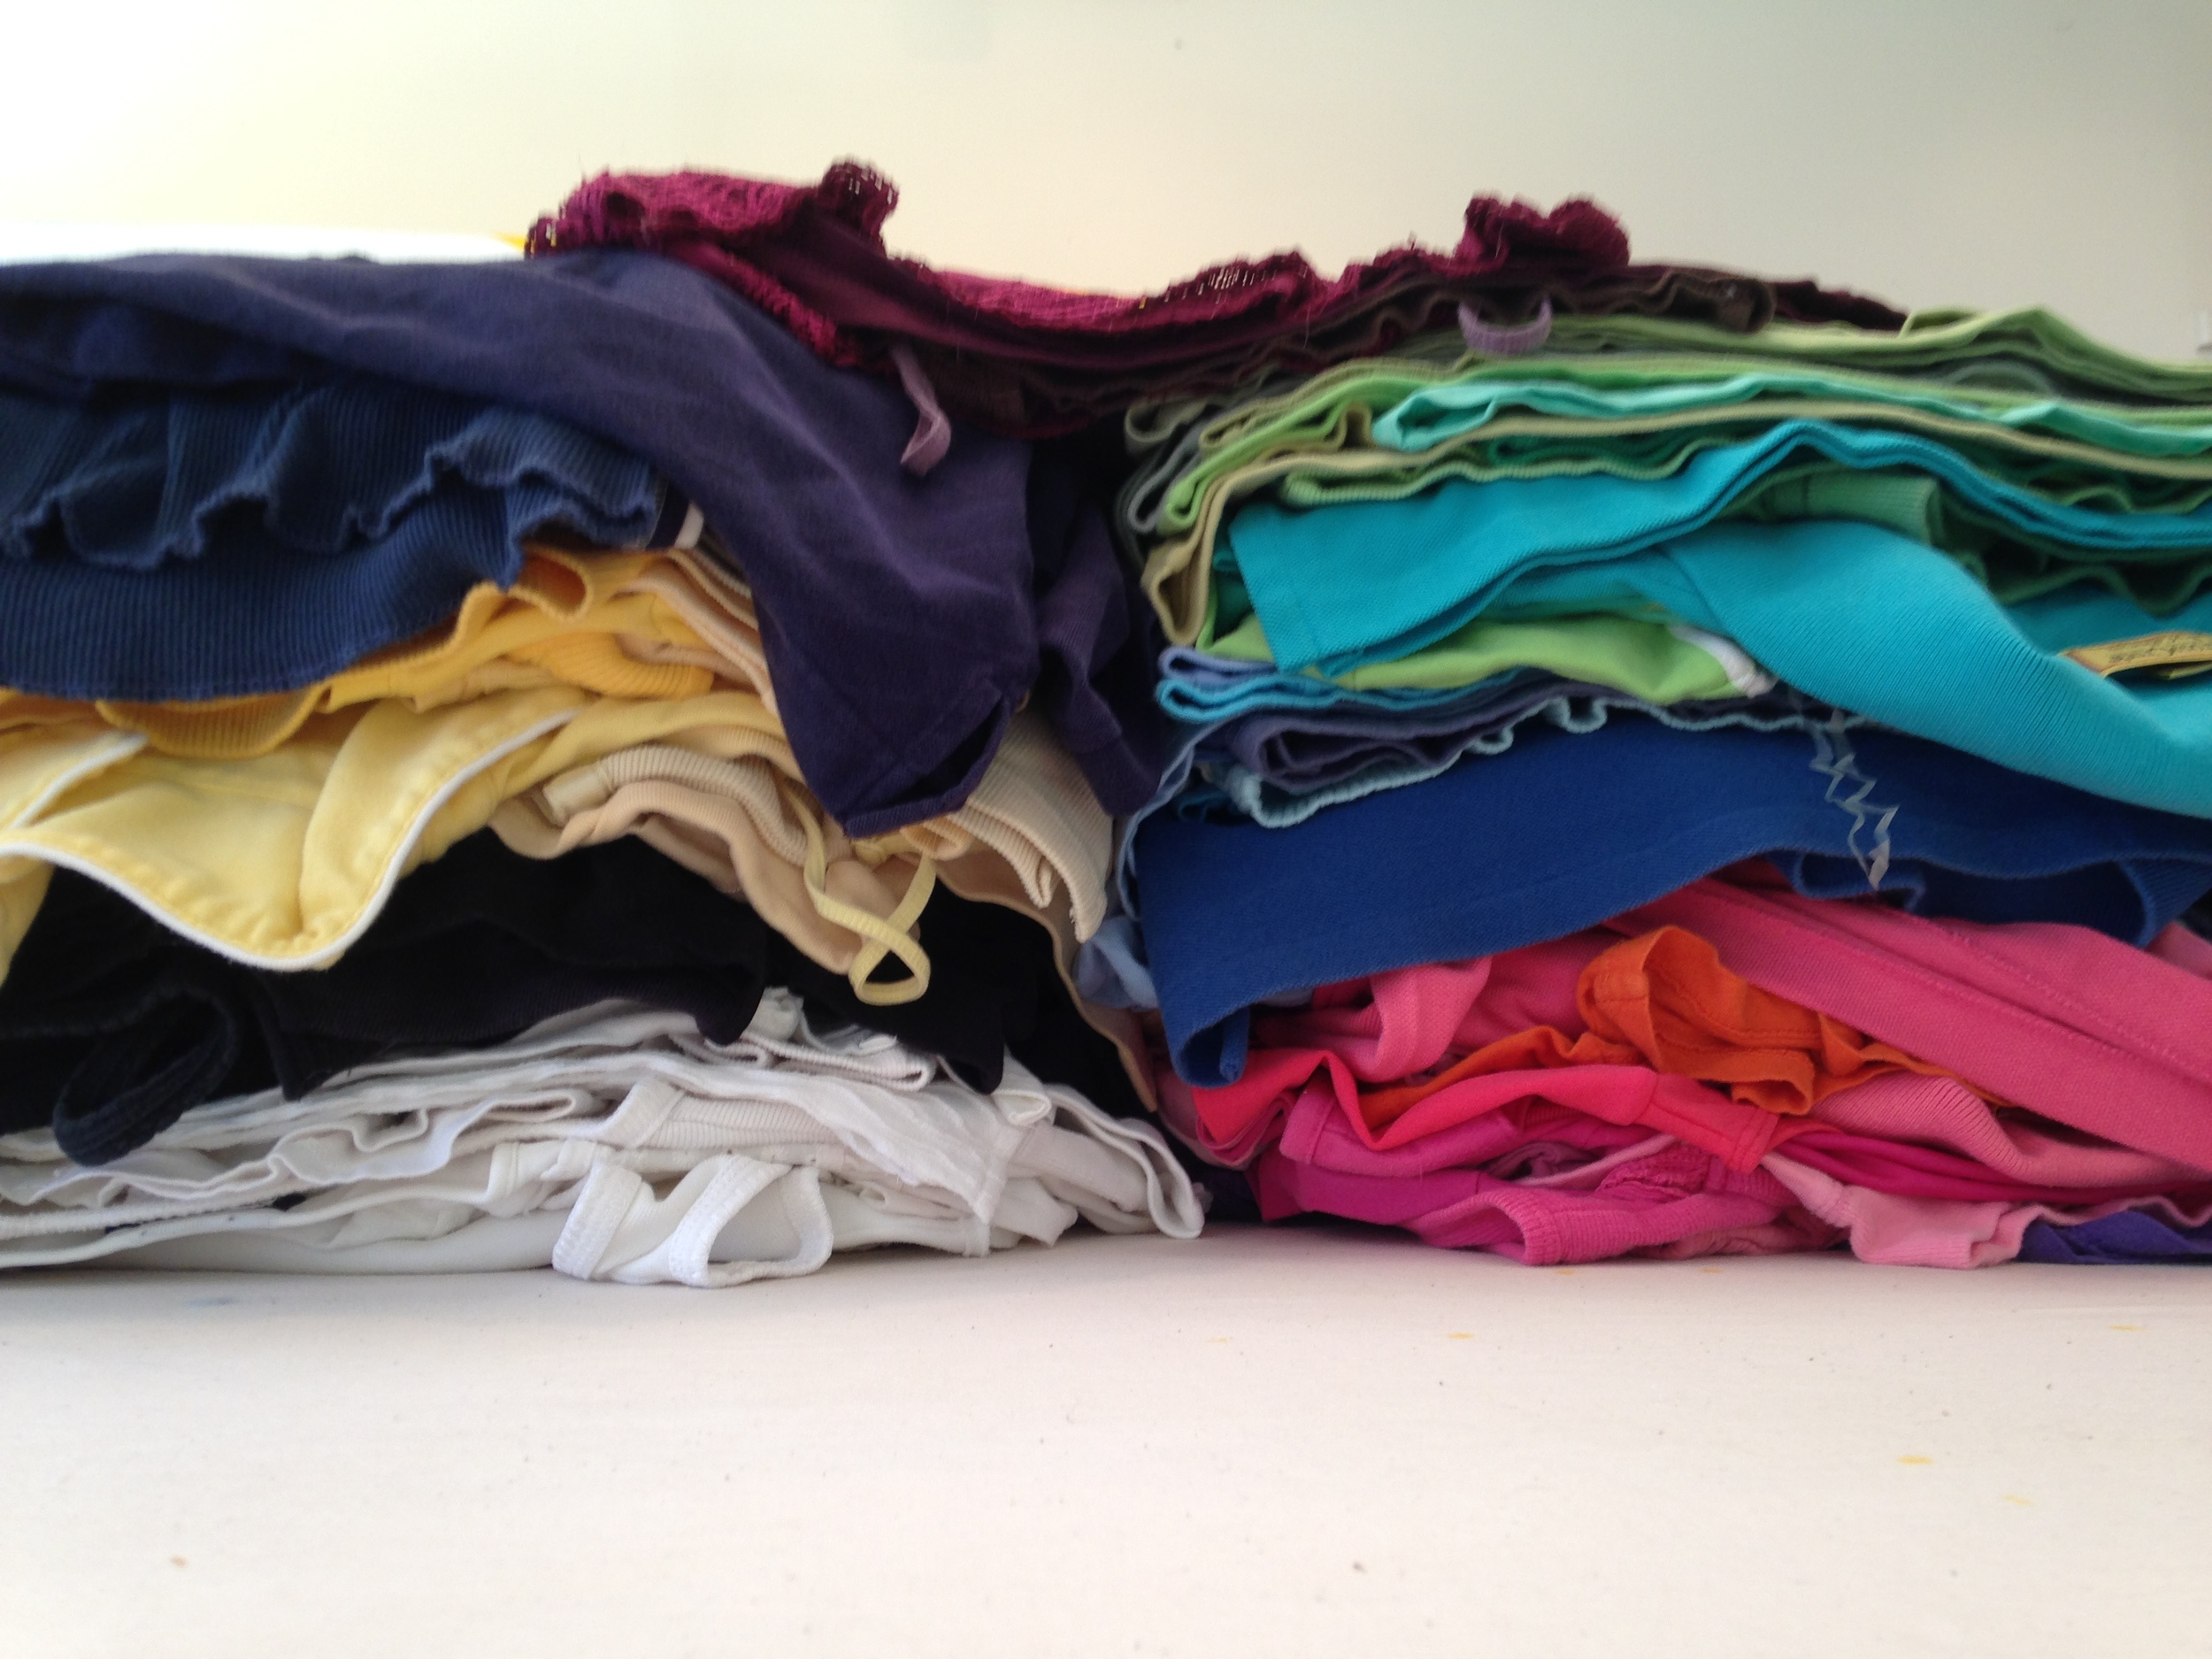 118 solid color t-shirts, sorted by color